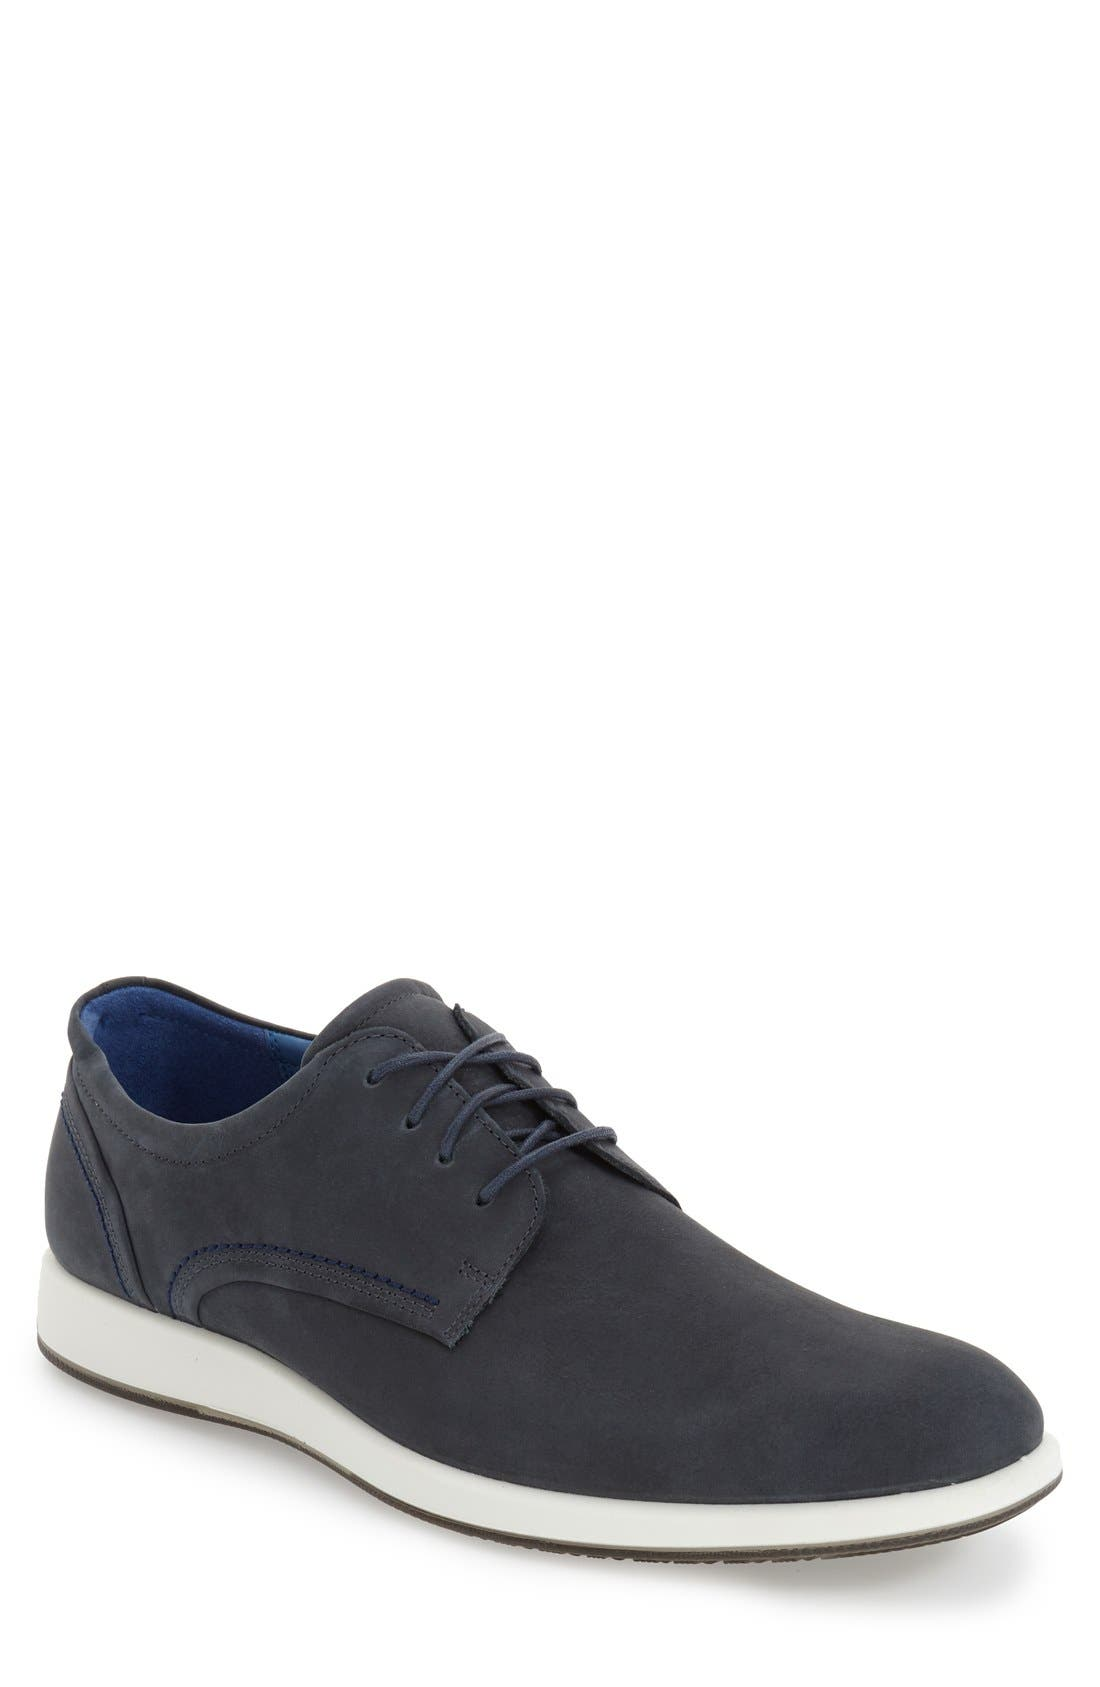 ECCO 'Jared' Leather Oxford